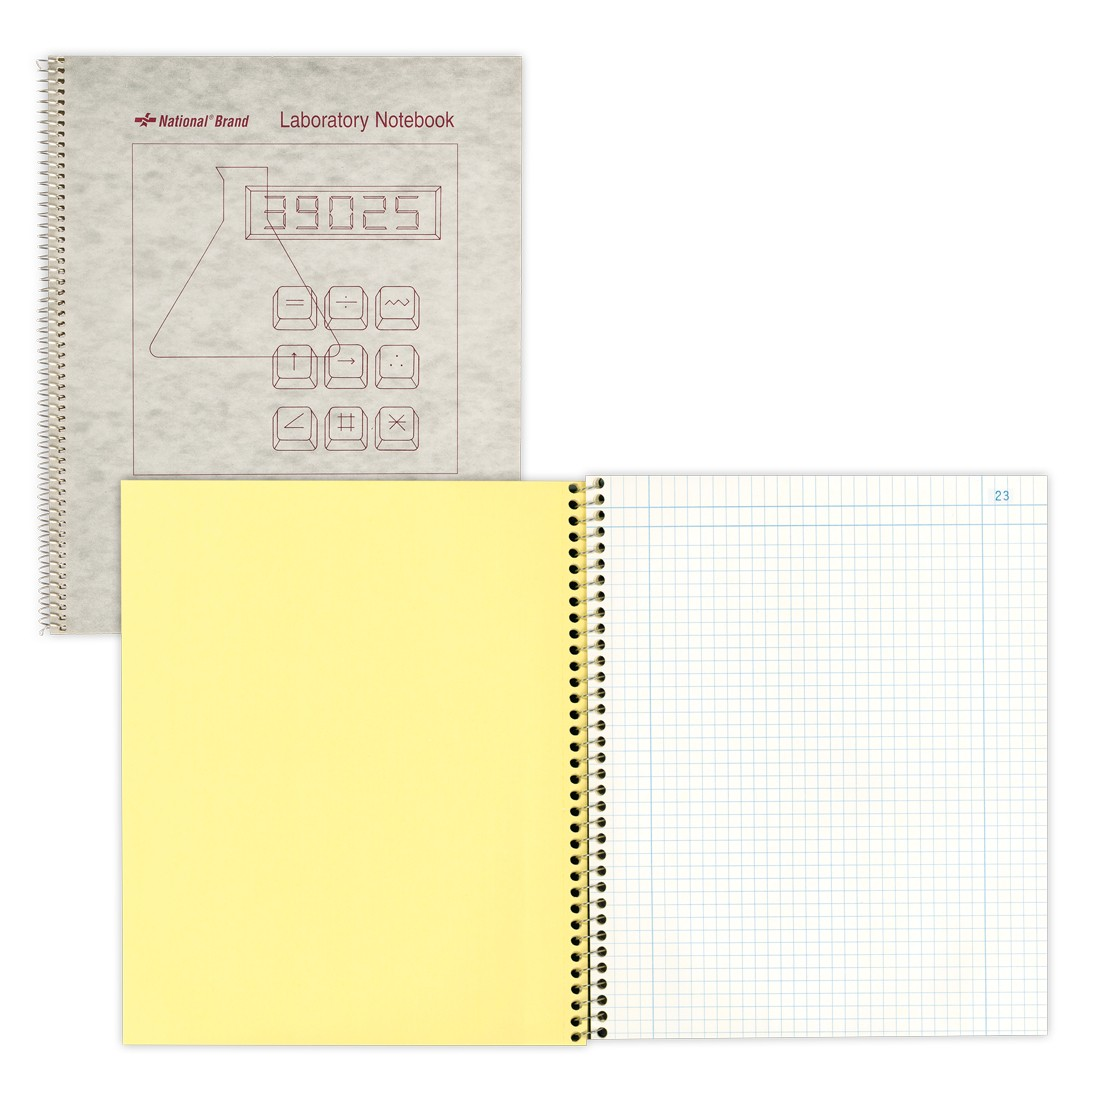 Image For National Brand Laboratory Notebook